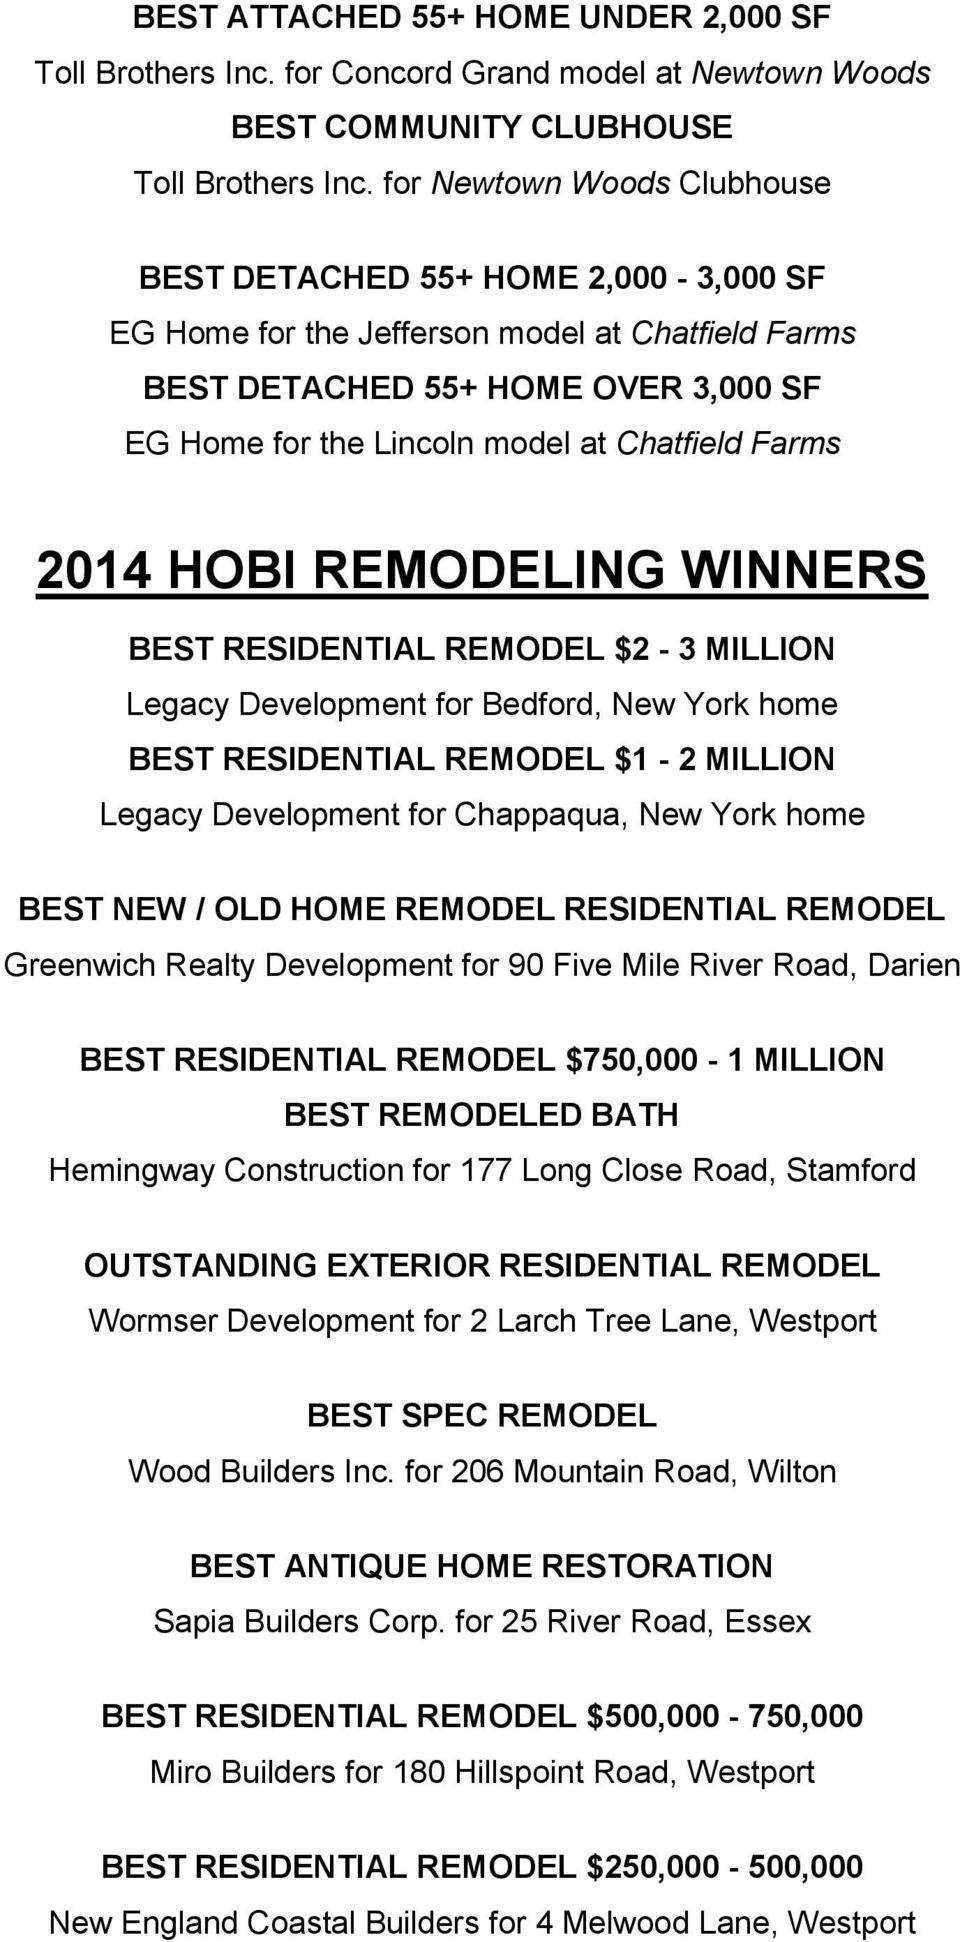 Farms 2014 HOBI REMODELING WINNERS BEST RESIDENTIAL REMODEL $2-3 MILLION Legacy Development for Bedford, New York home BEST RESIDENTIAL REMODEL $1-2 MILLION Legacy Development for Chappaqua, New York